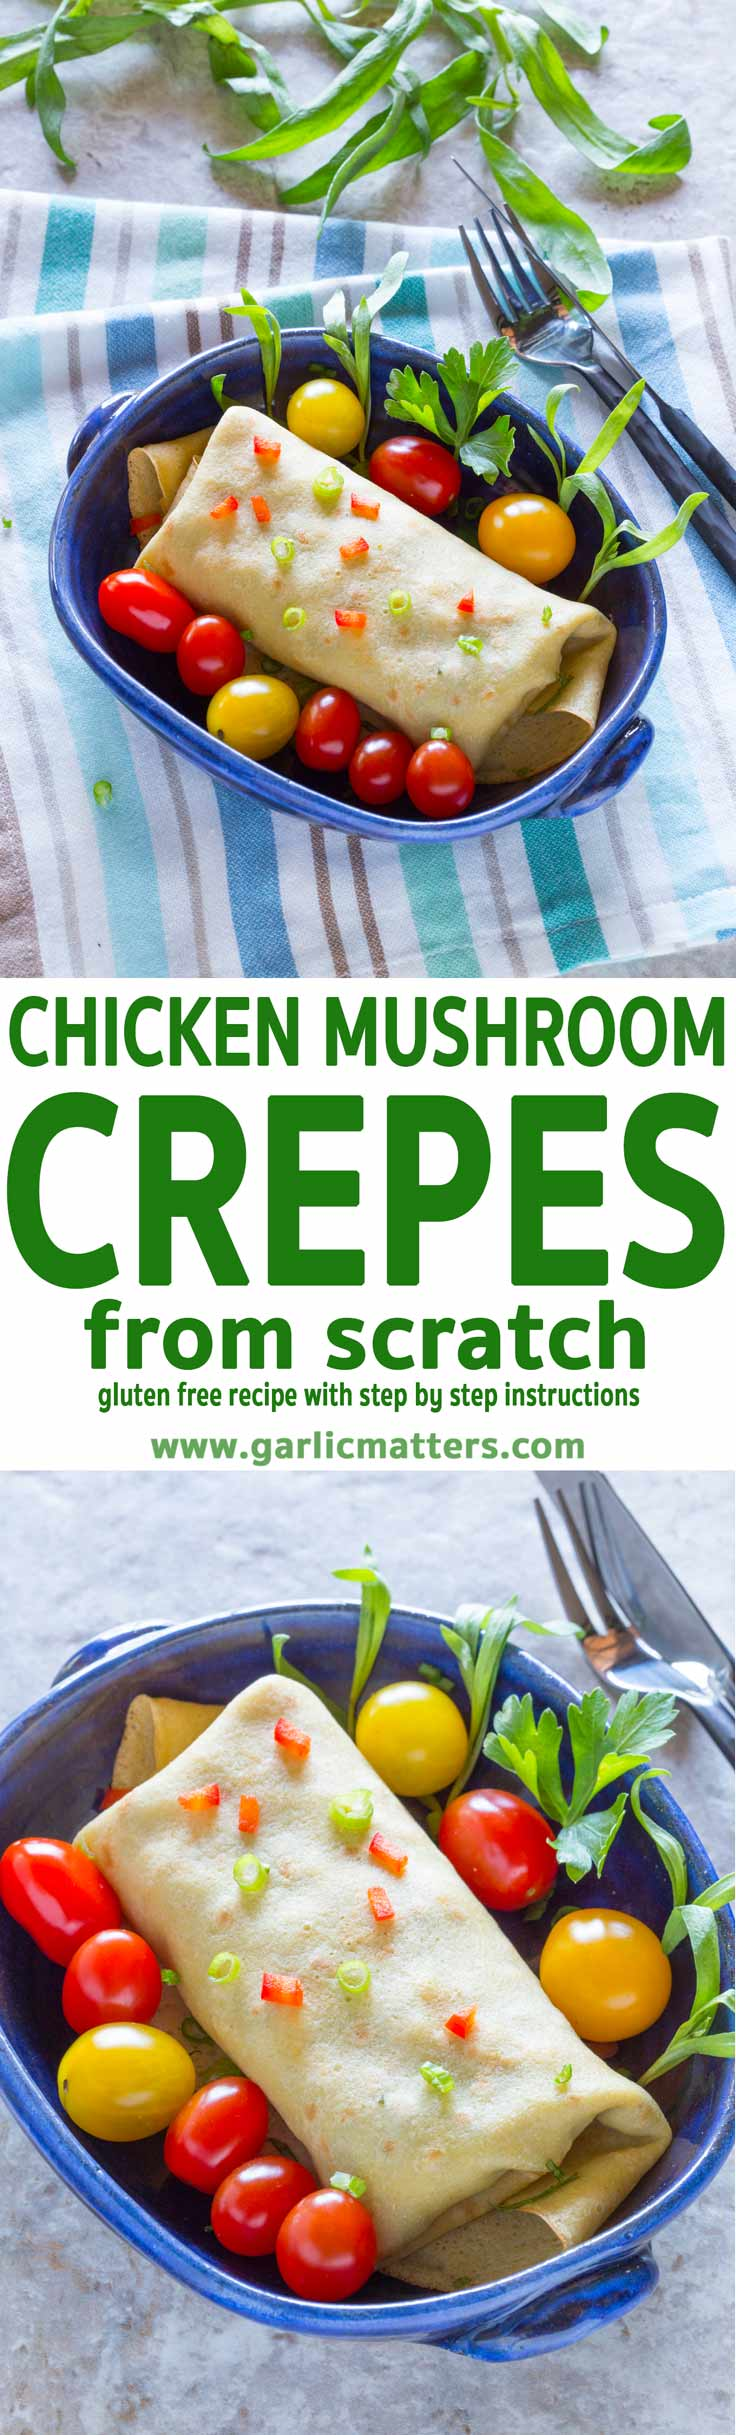 Delicious Chicken Mushroom Crepe recipe made from scratch - gluten free, with simple ingredients, bold flavours and foolproof instructions.